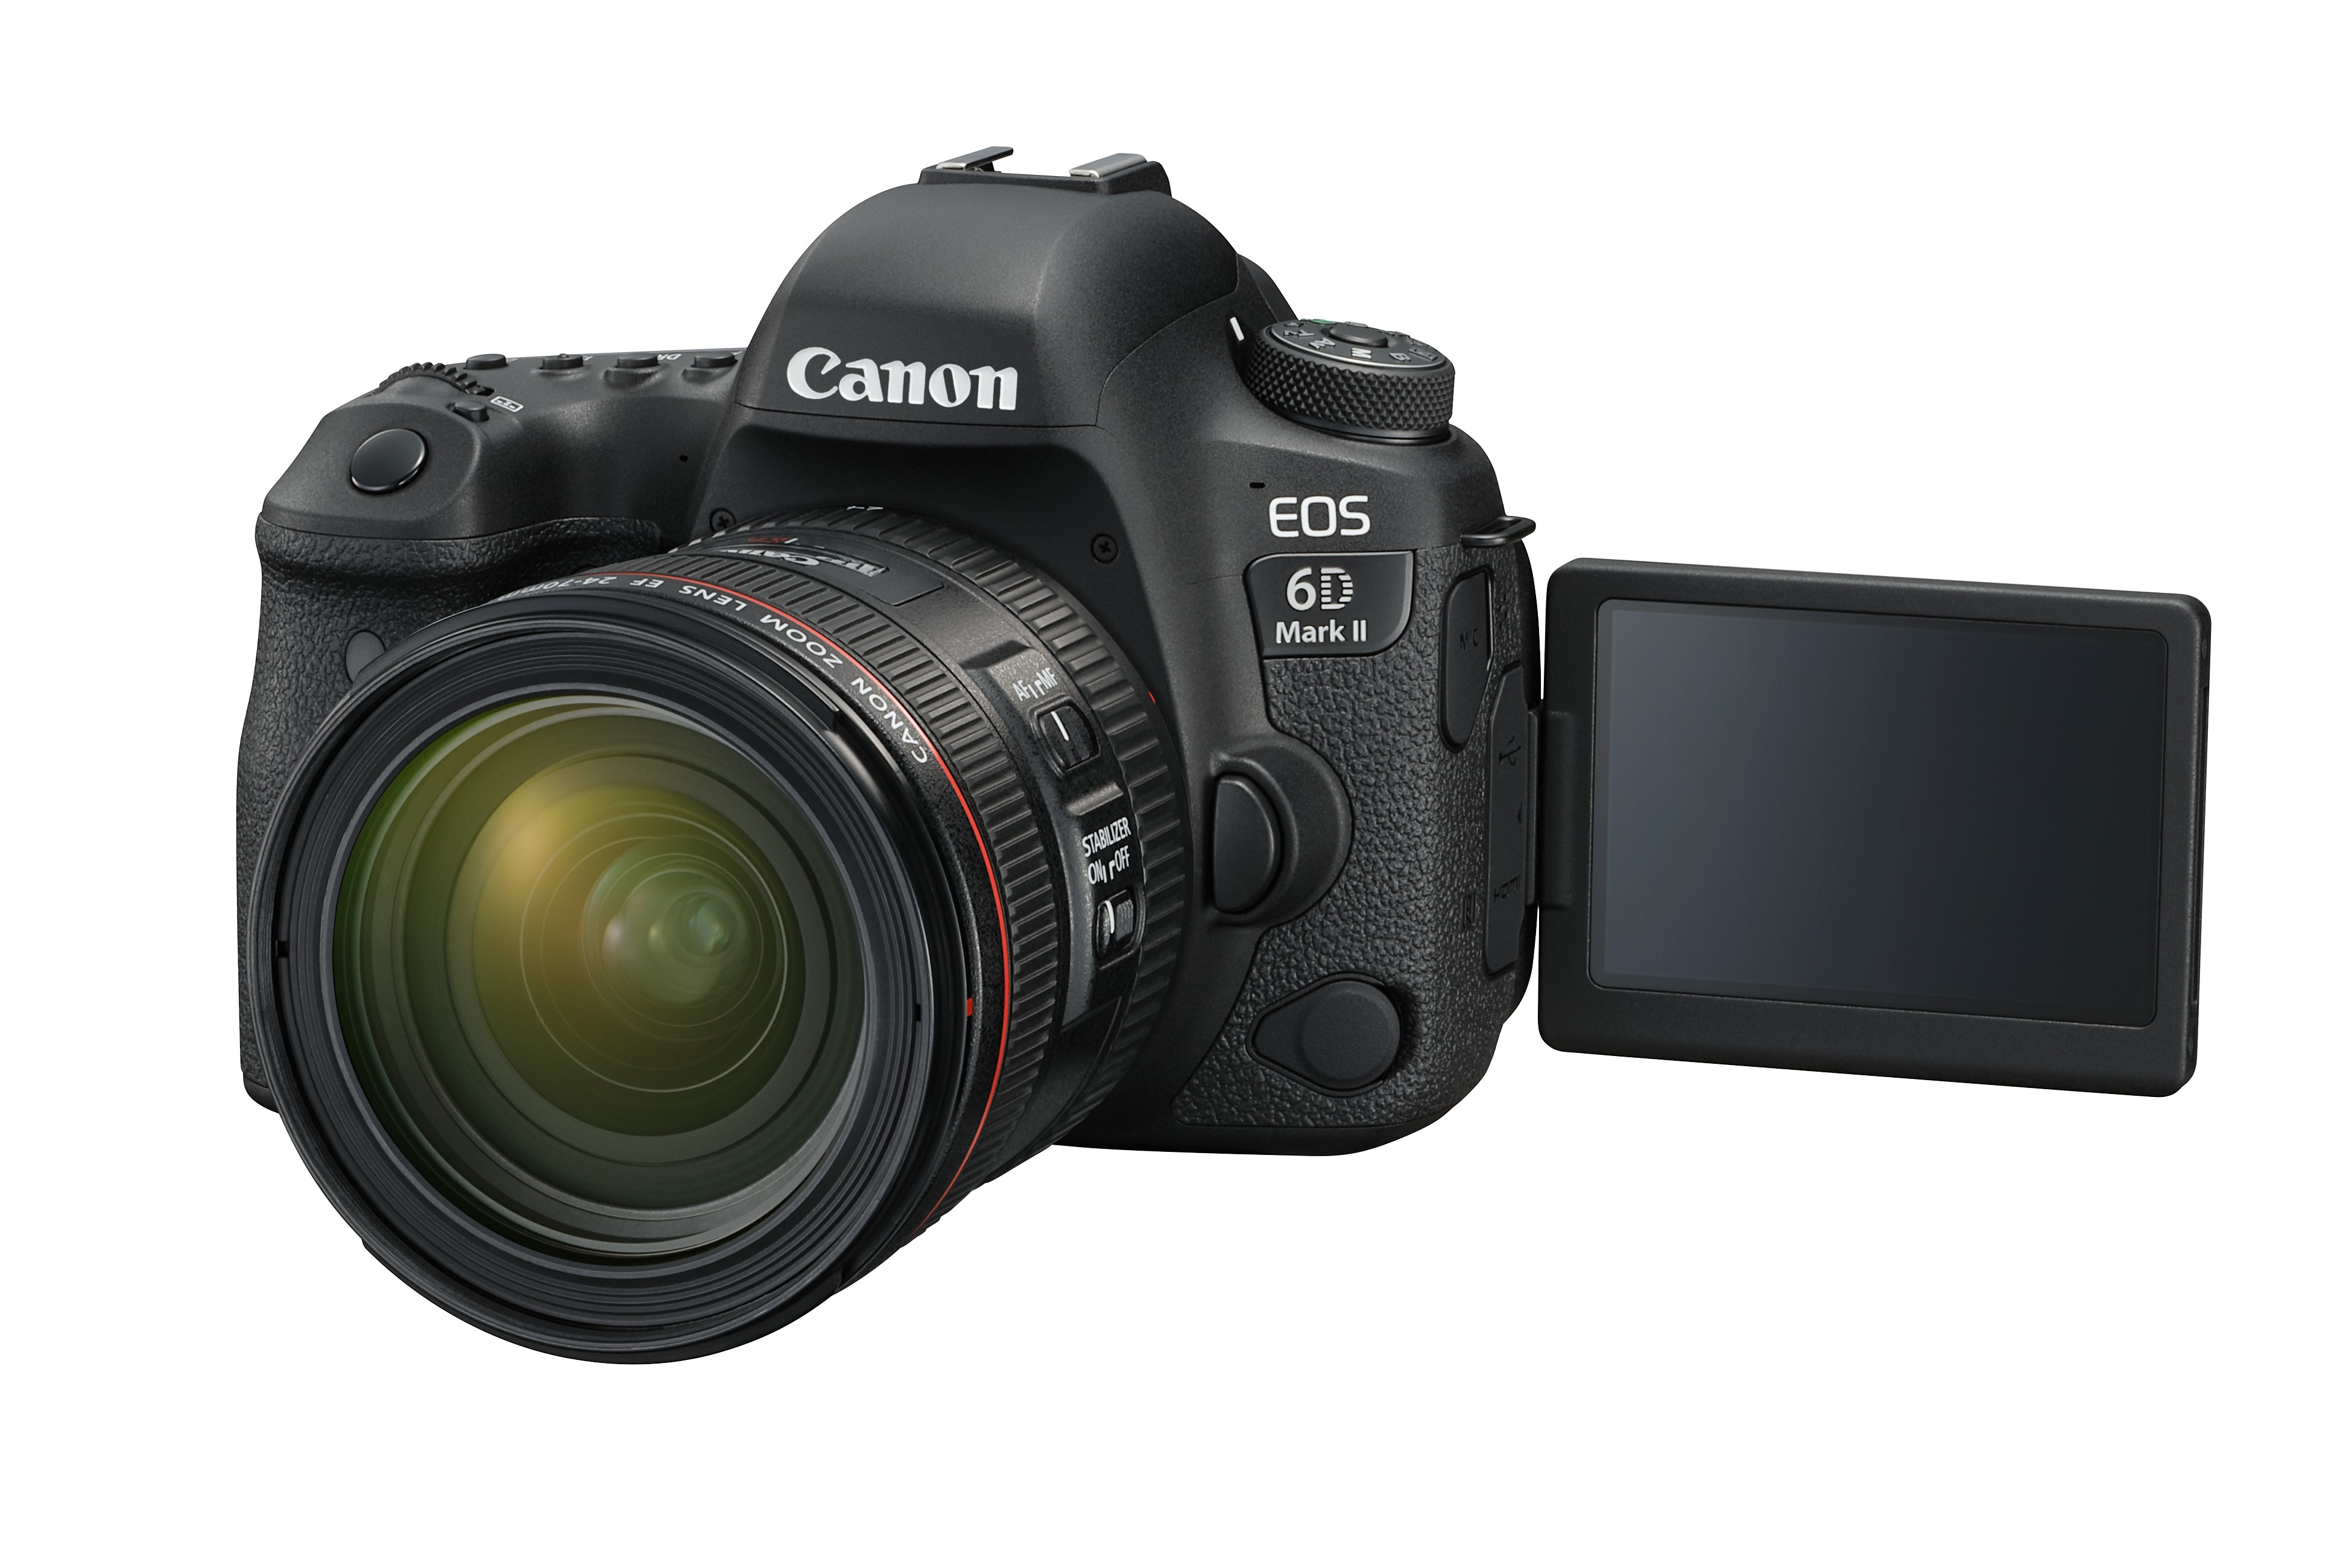 canon eos 6d mark ii vs canon eos 6d is it worth upgrading amateur photographer. Black Bedroom Furniture Sets. Home Design Ideas